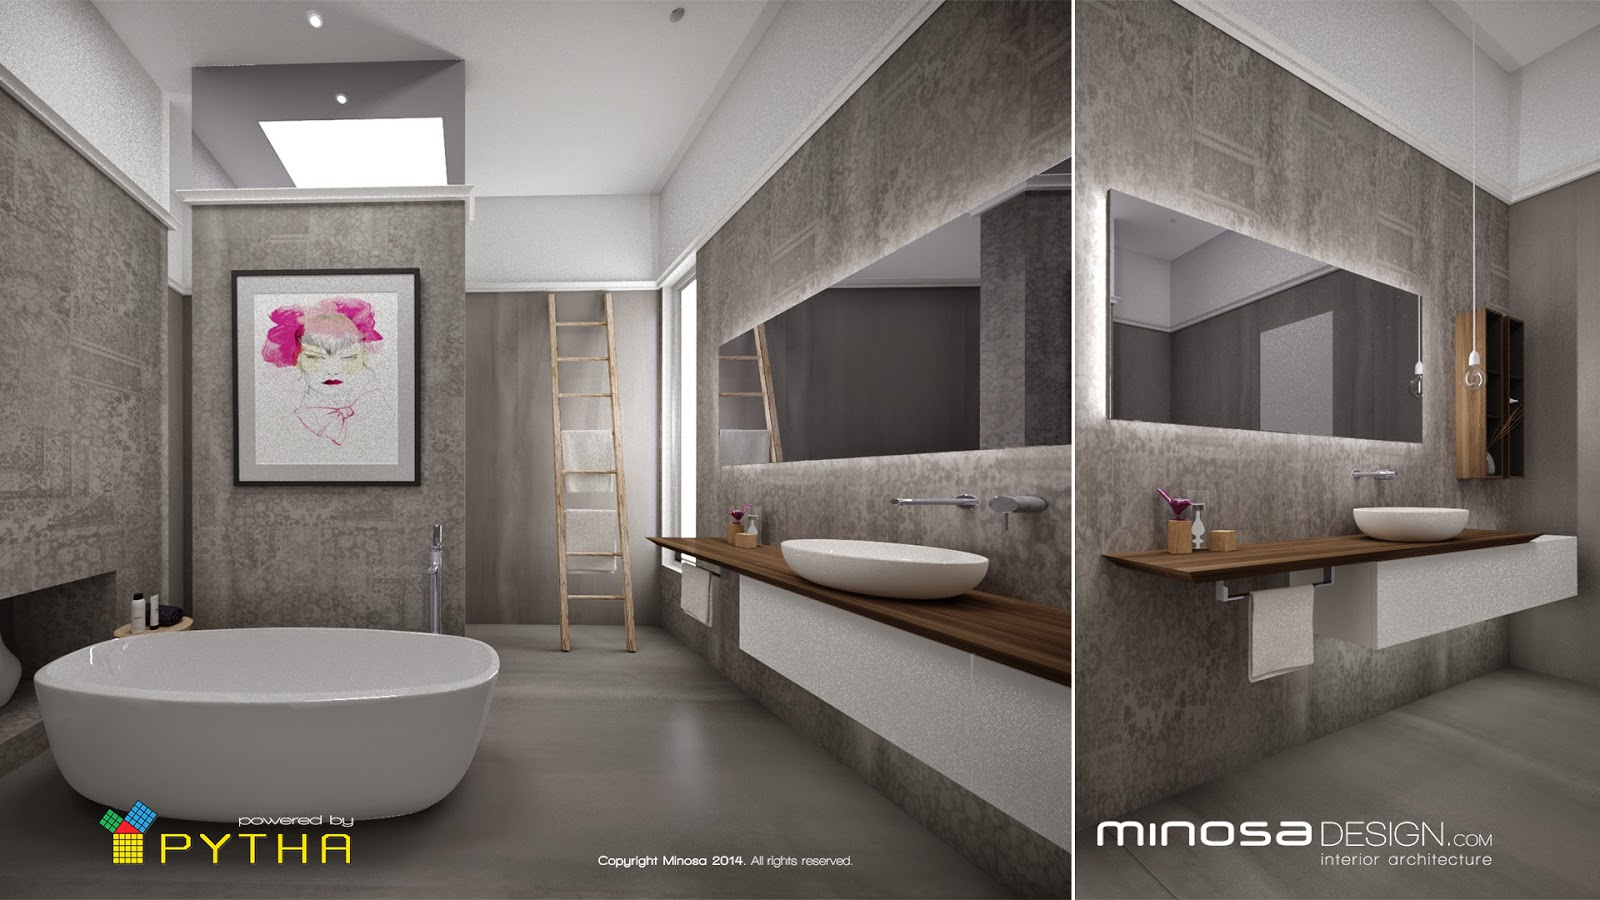 Design a bathroom 3d - Minosa 3d Rendering